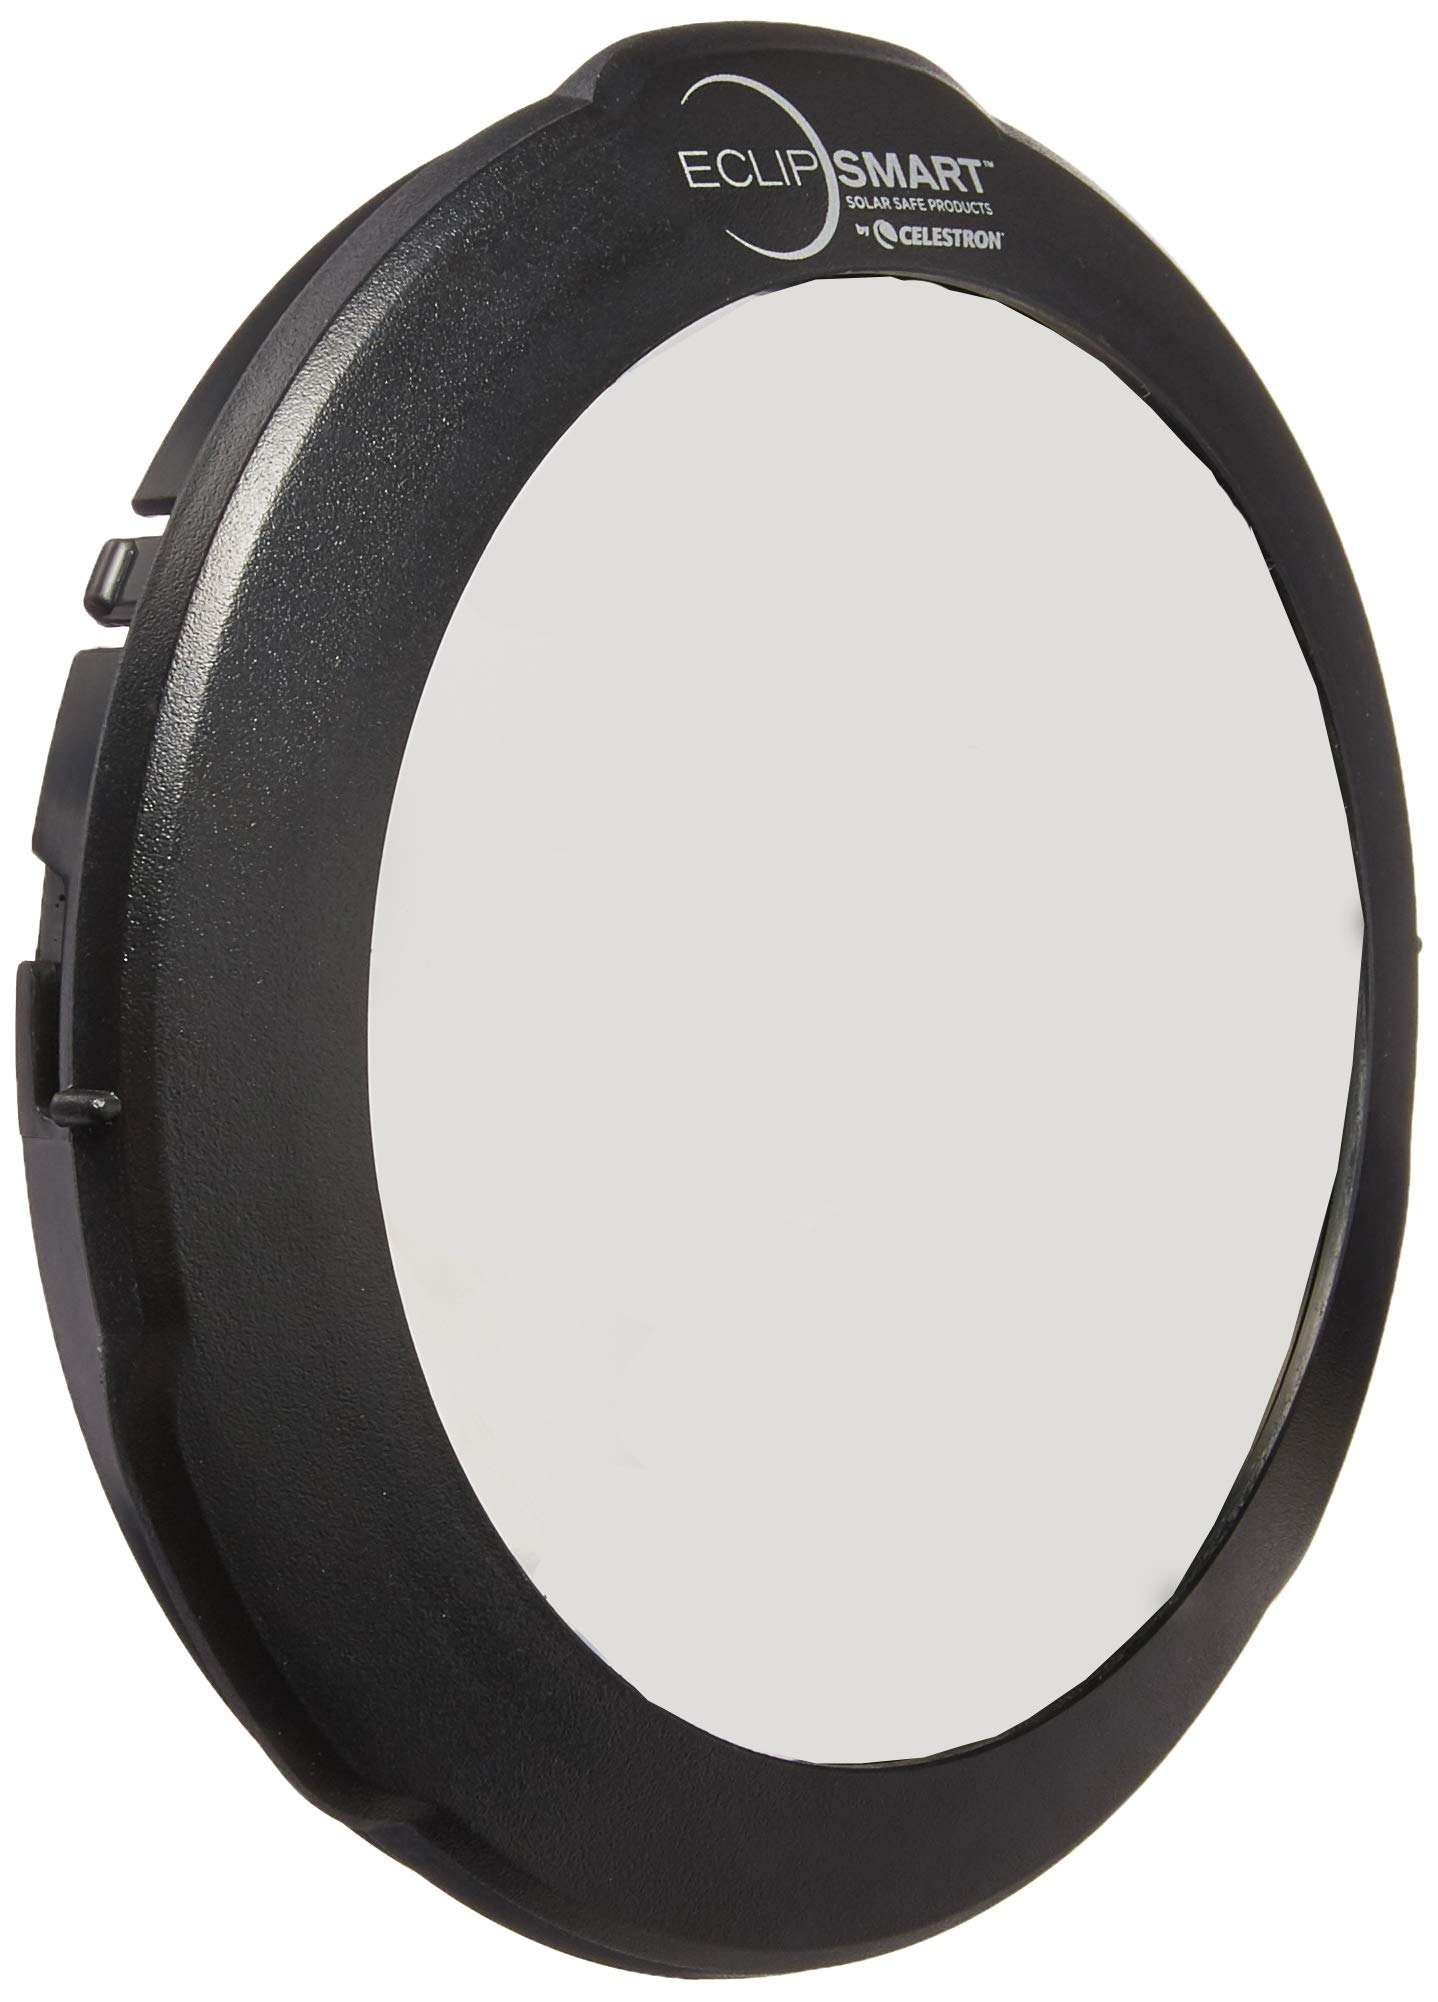 Celestron 94244 Enhance Your Viewing Experience Telescope Filter, 8'', Black by Celestron